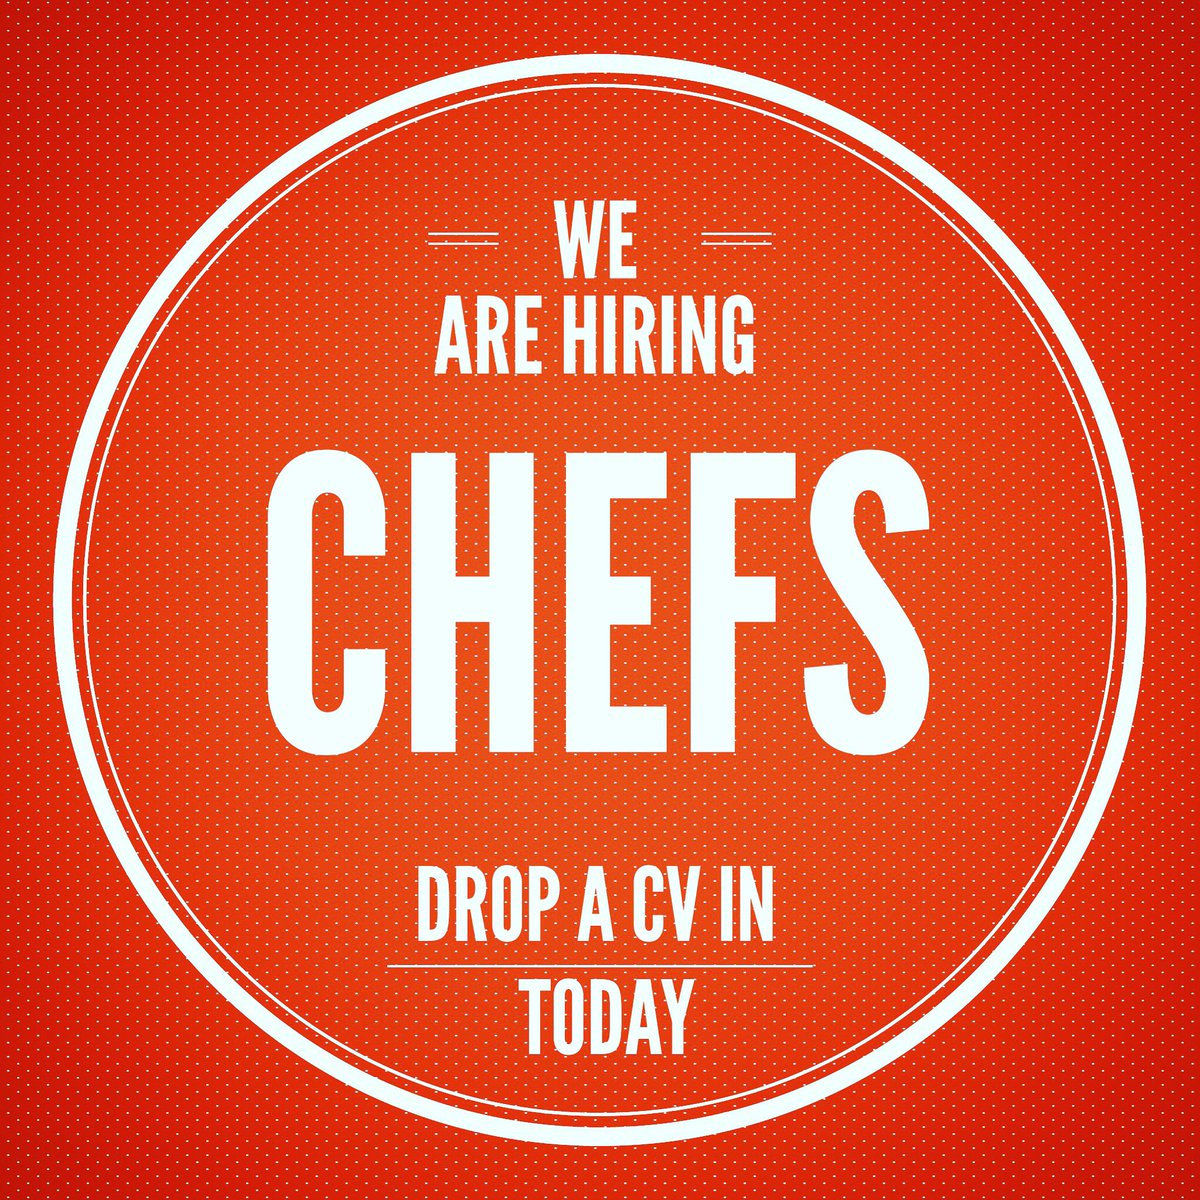 Chefs looking for work